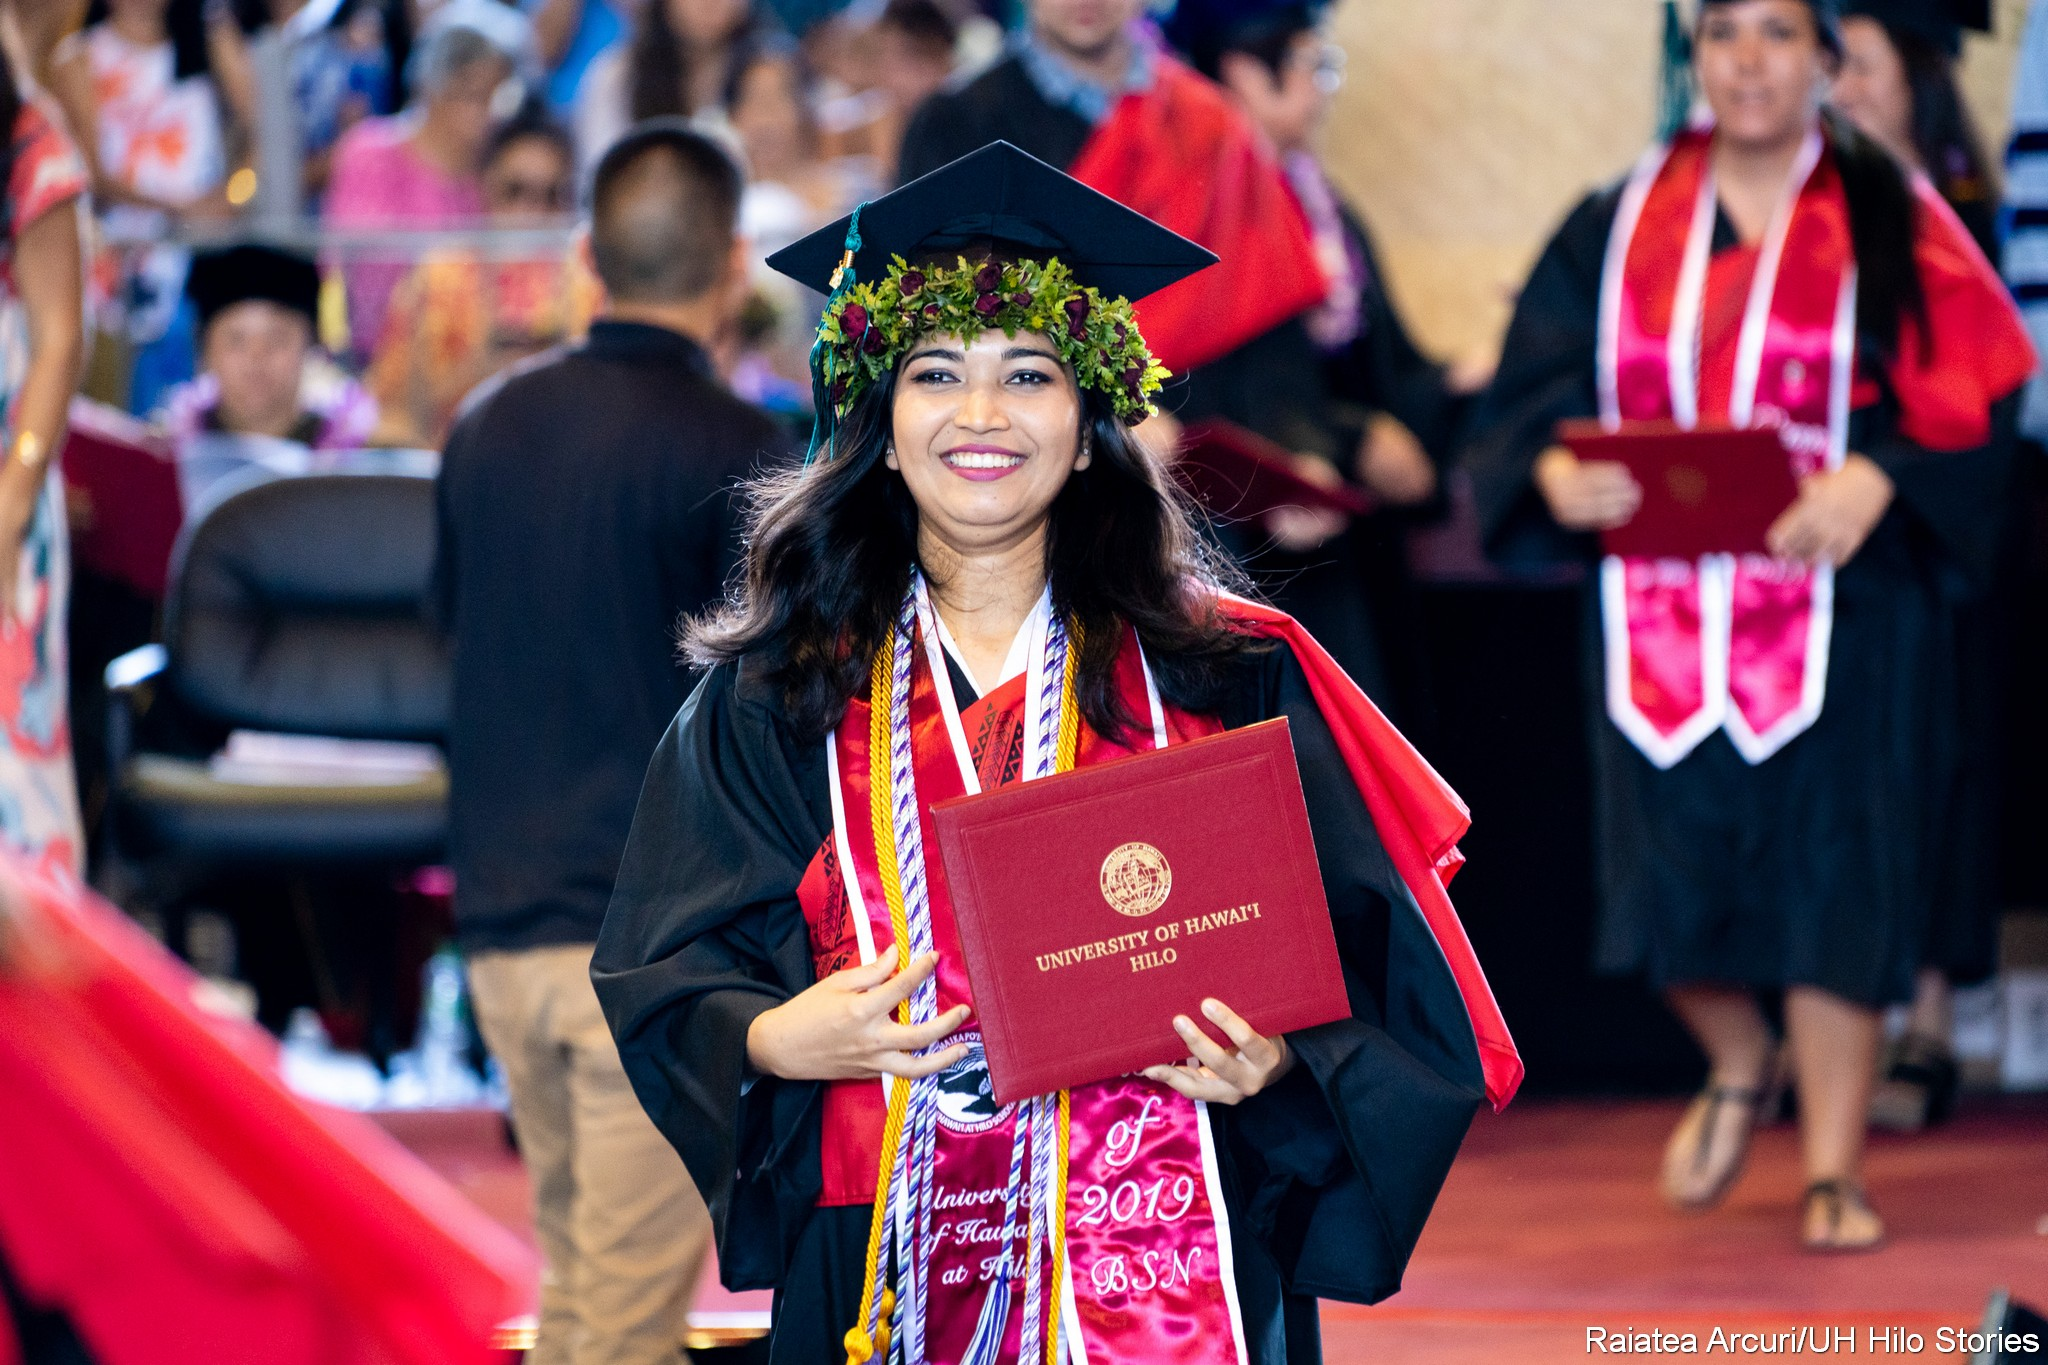 Female graduate with multiple cords and head lei on cap leaving dais with diploma.